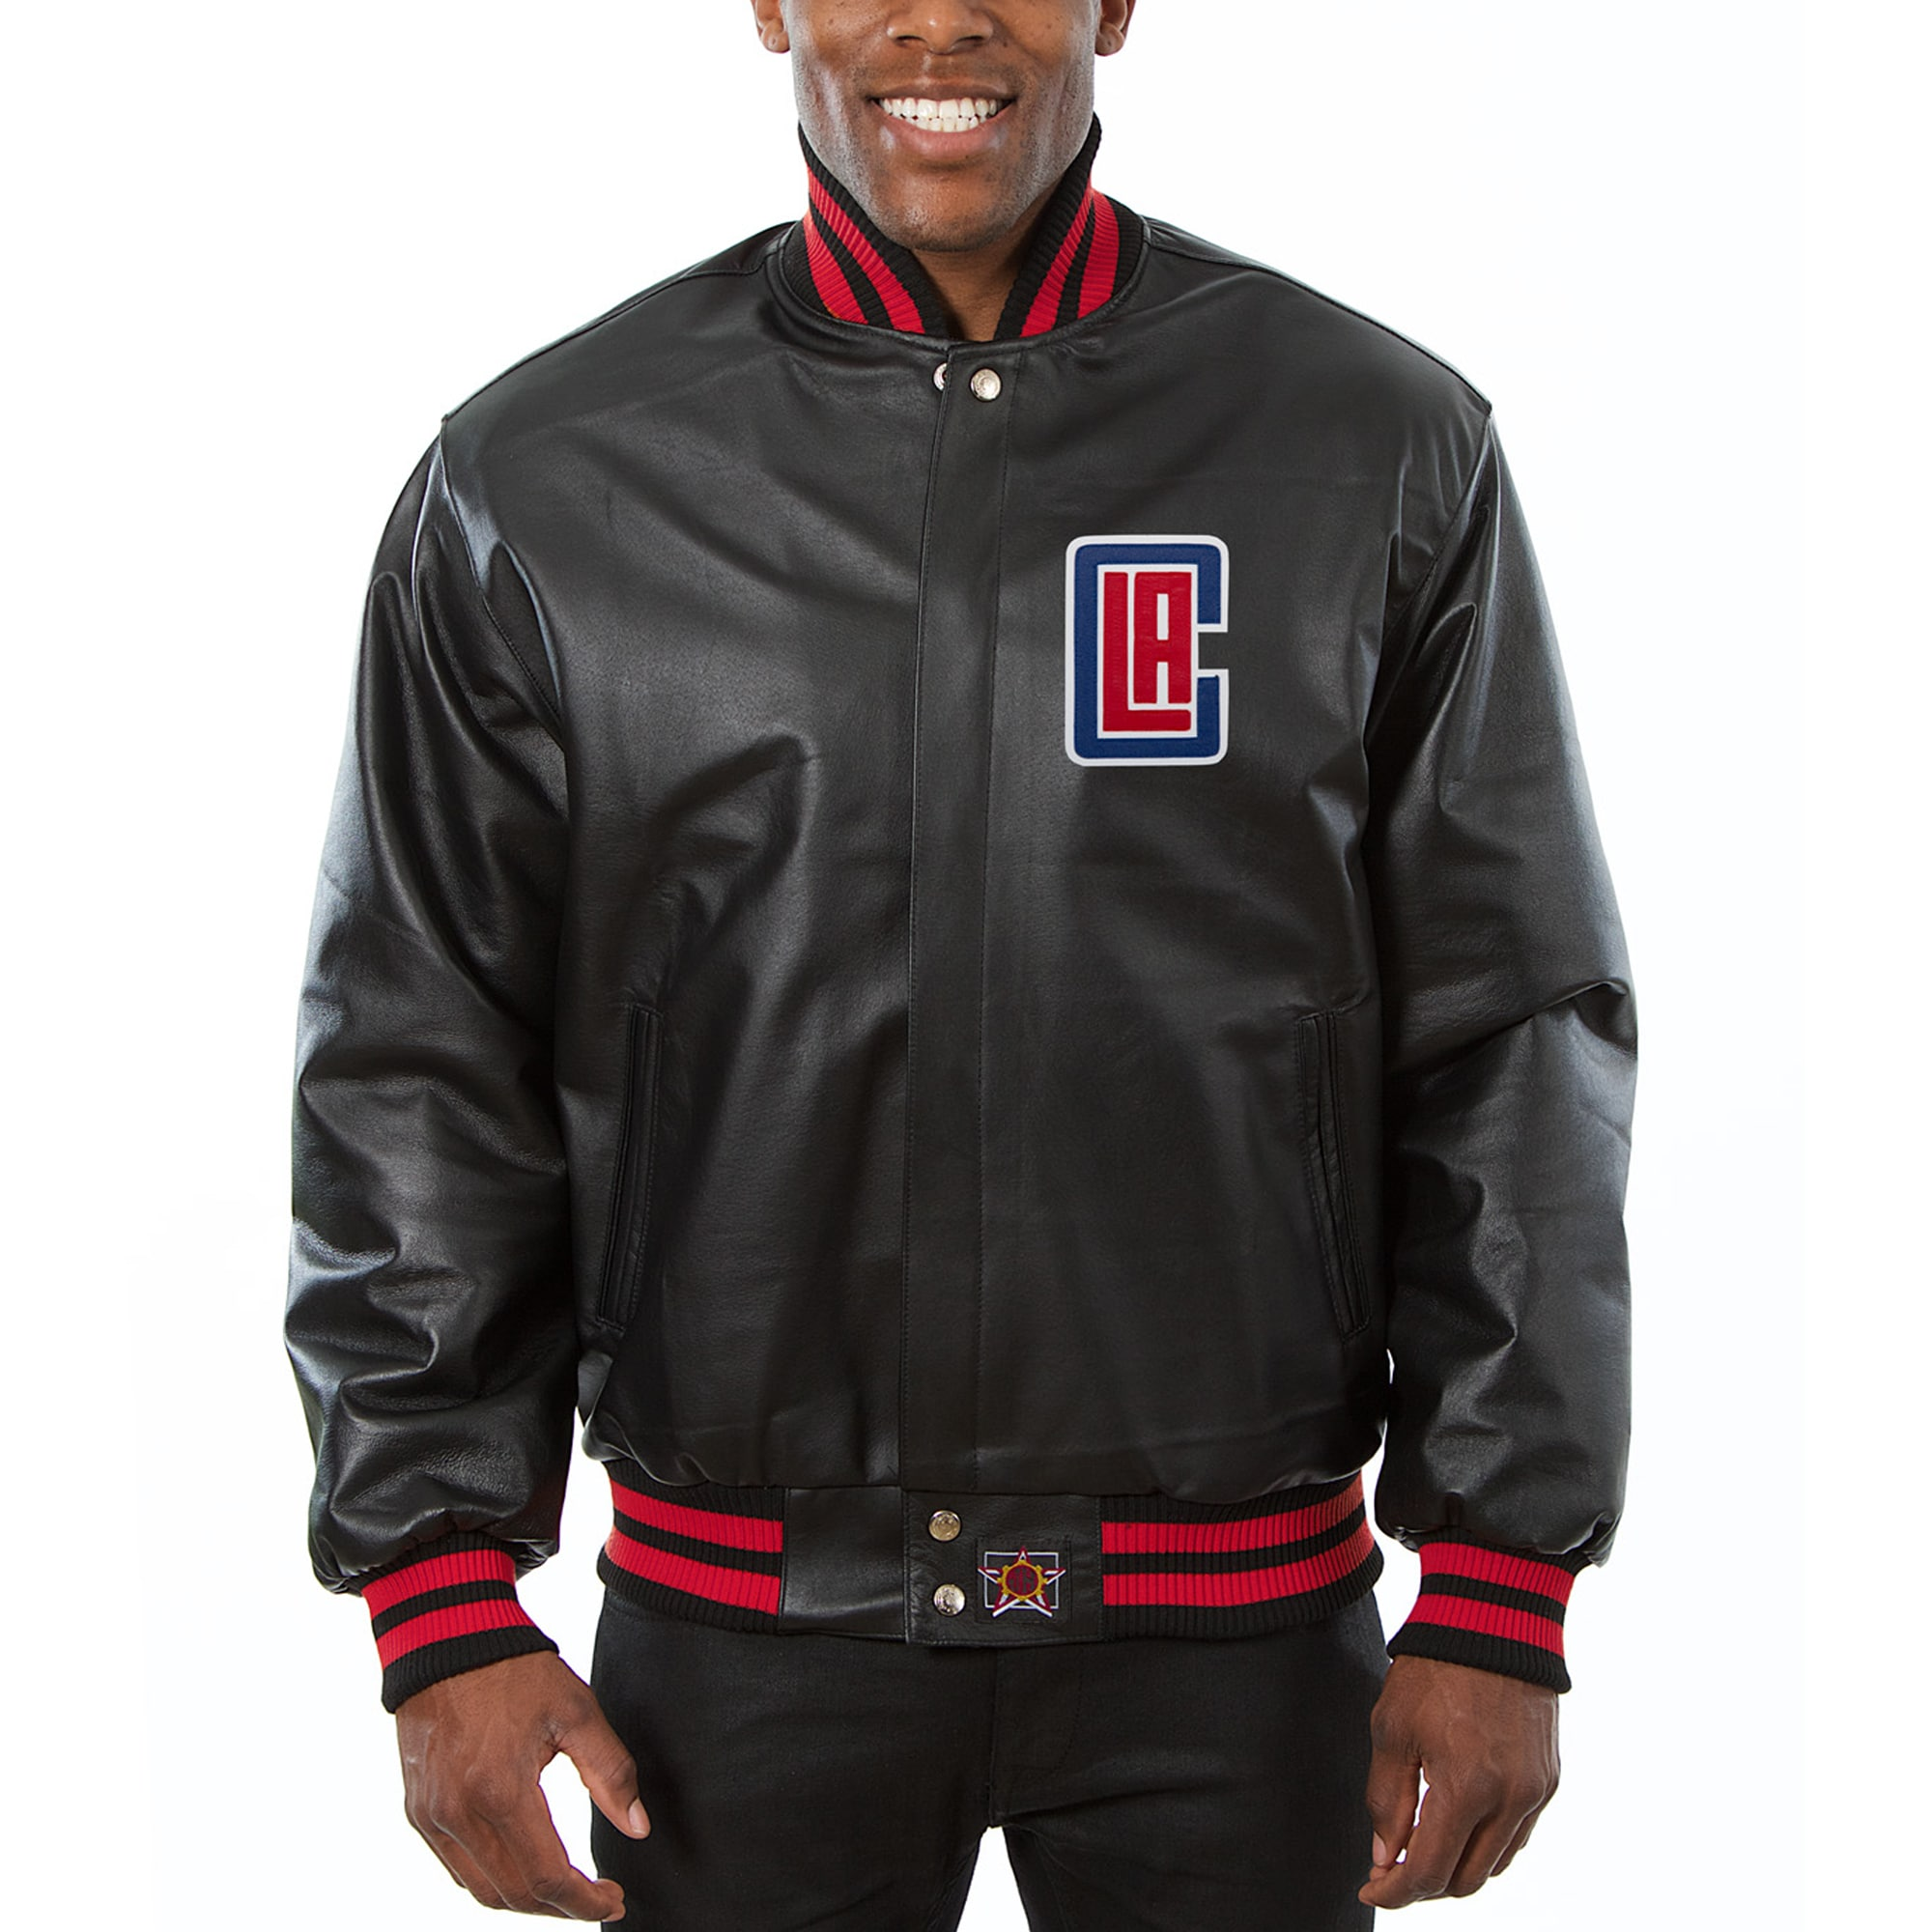 LA Clippers JH Design Big & Tall All-Leather Full-Snap Jacket - Black